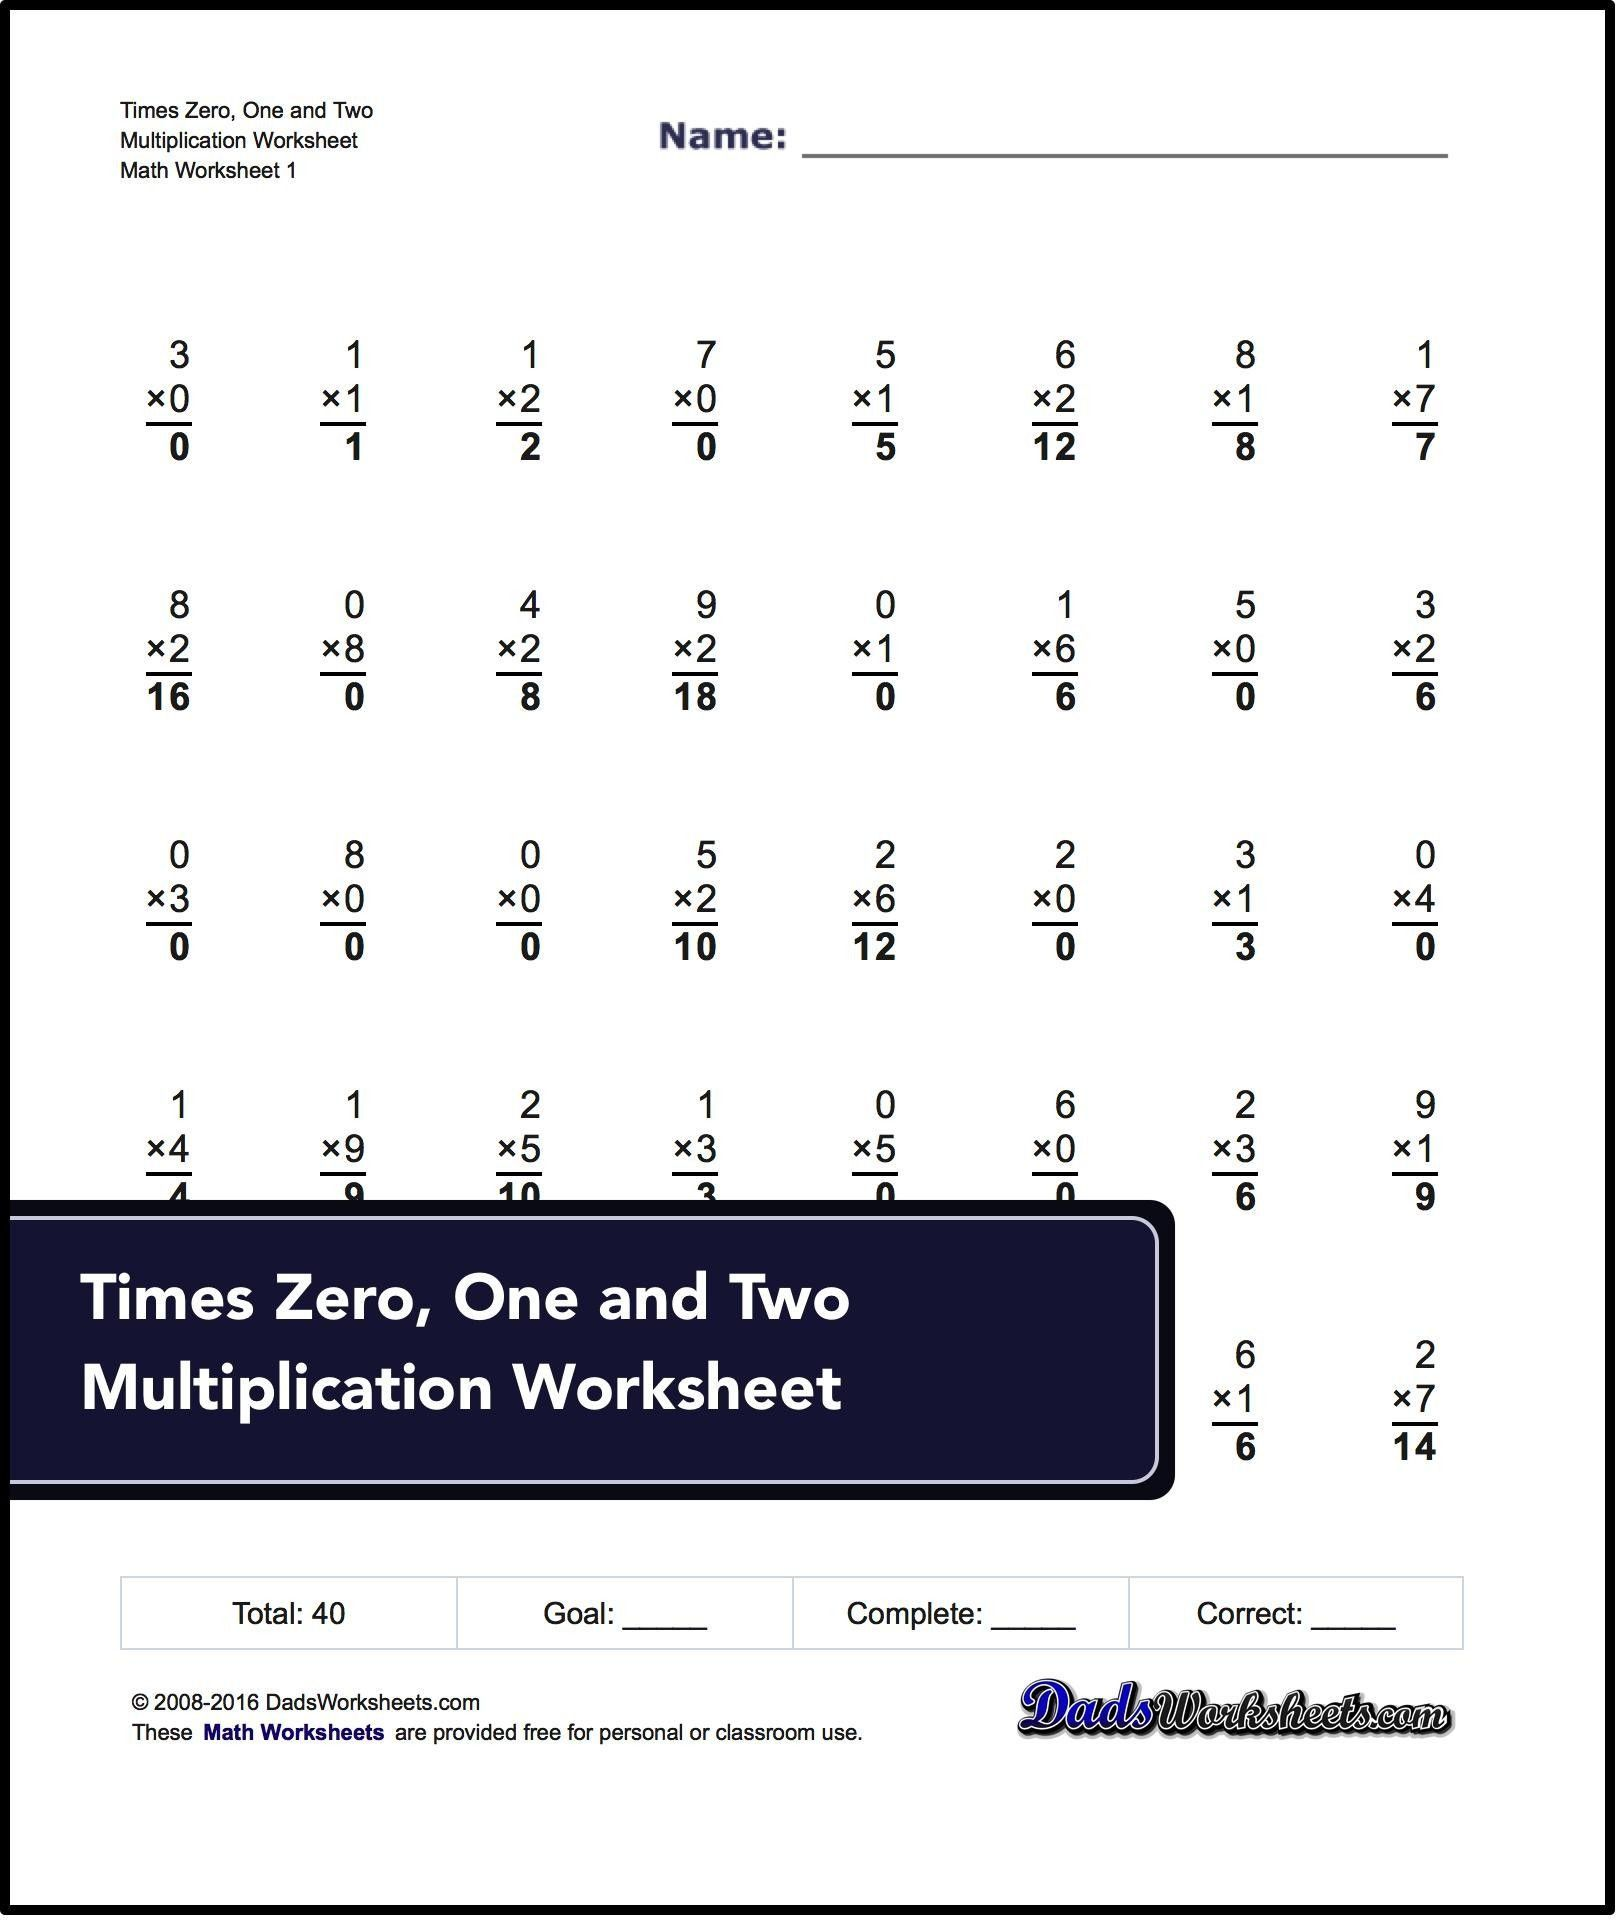 Classifiedfunctional Algebraic Equations Worksheets